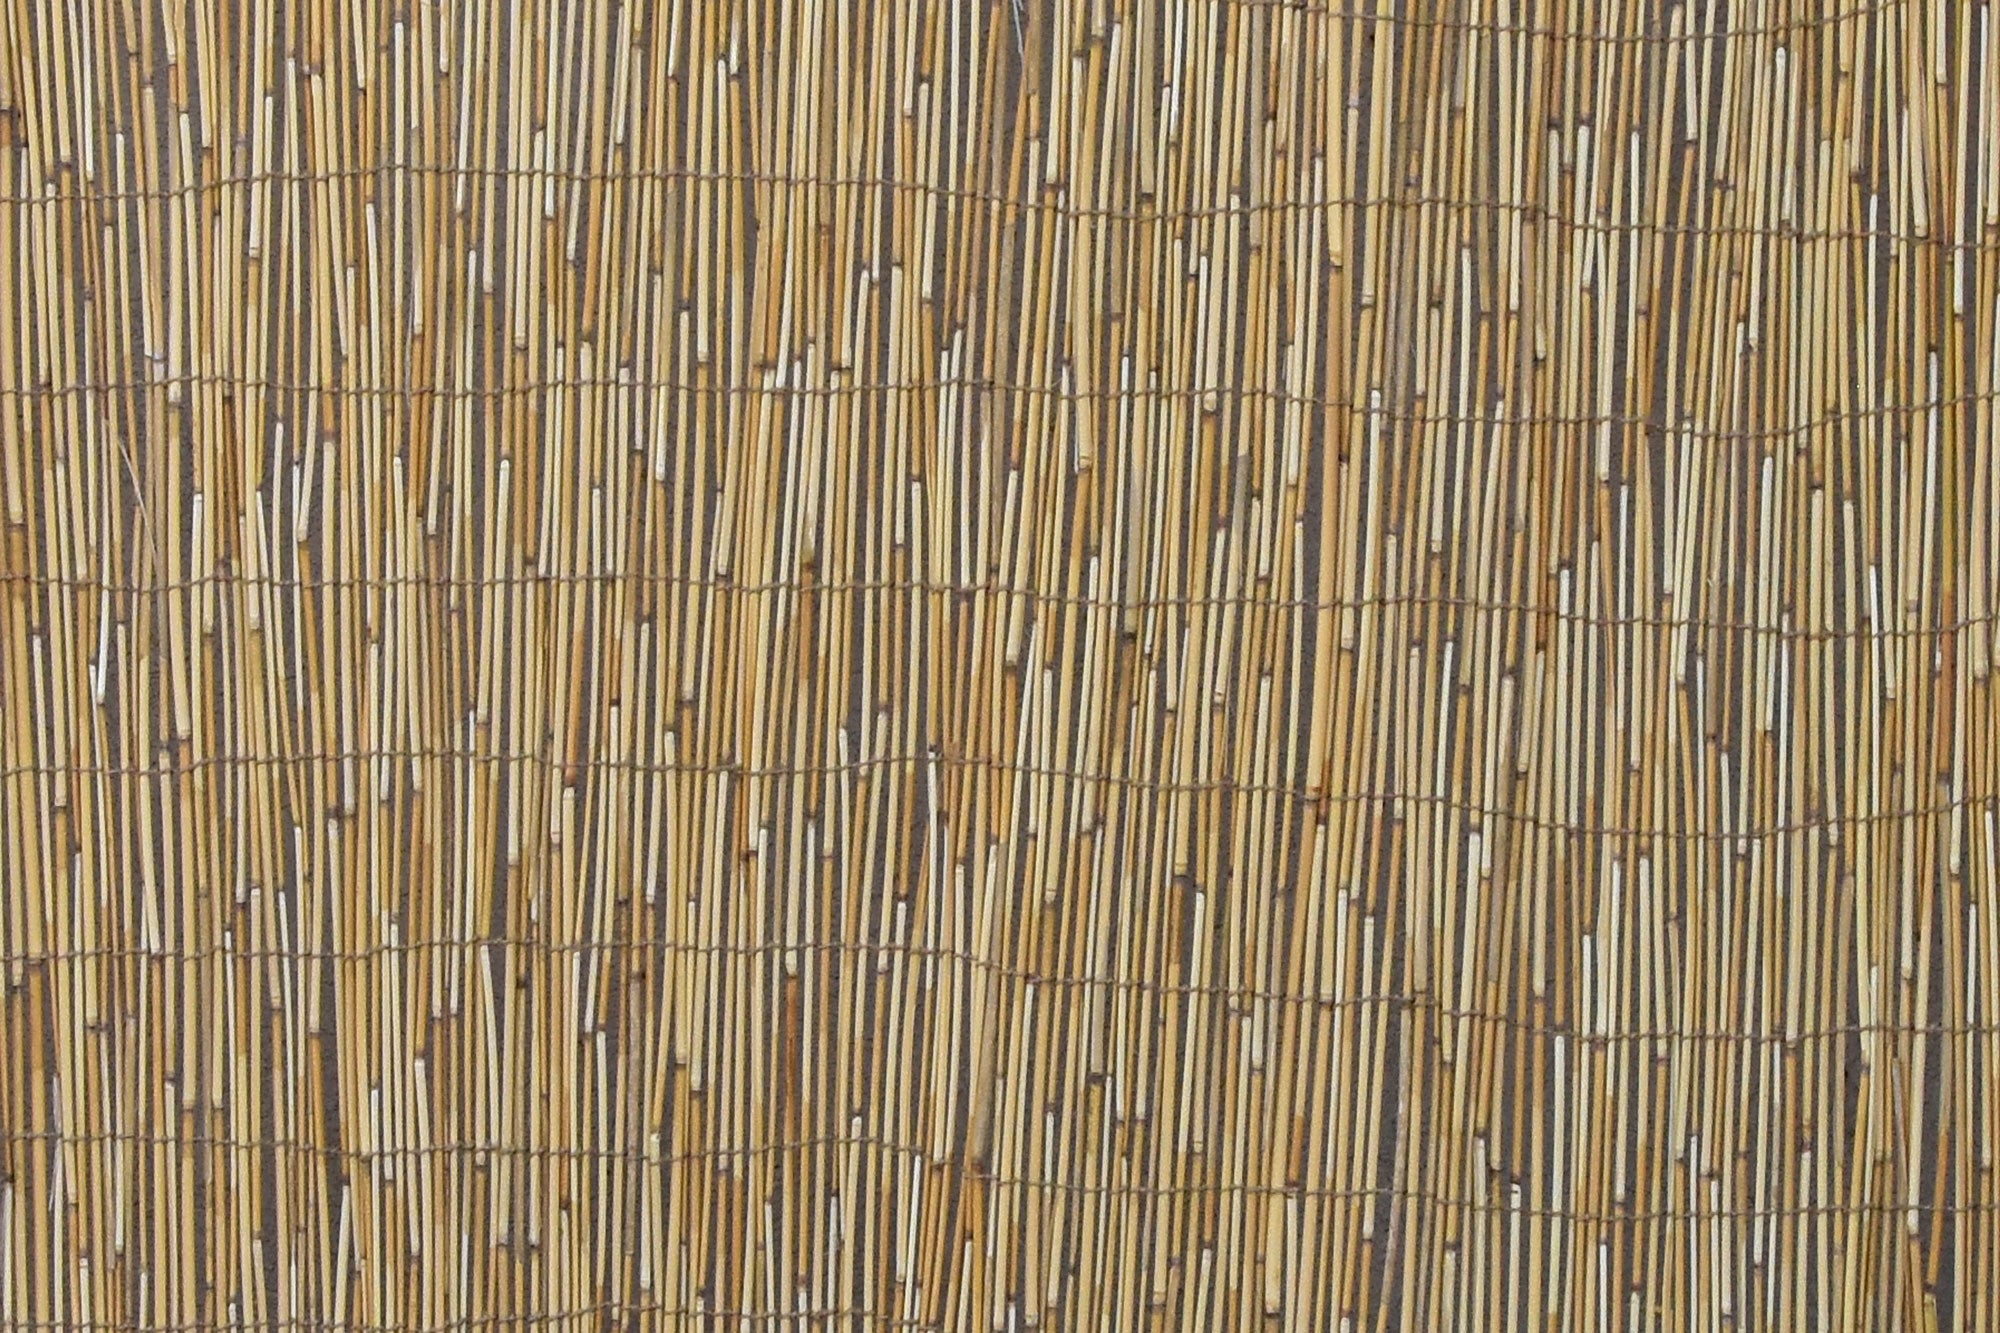 Reed Panel for Fencing and Sukkah Roof